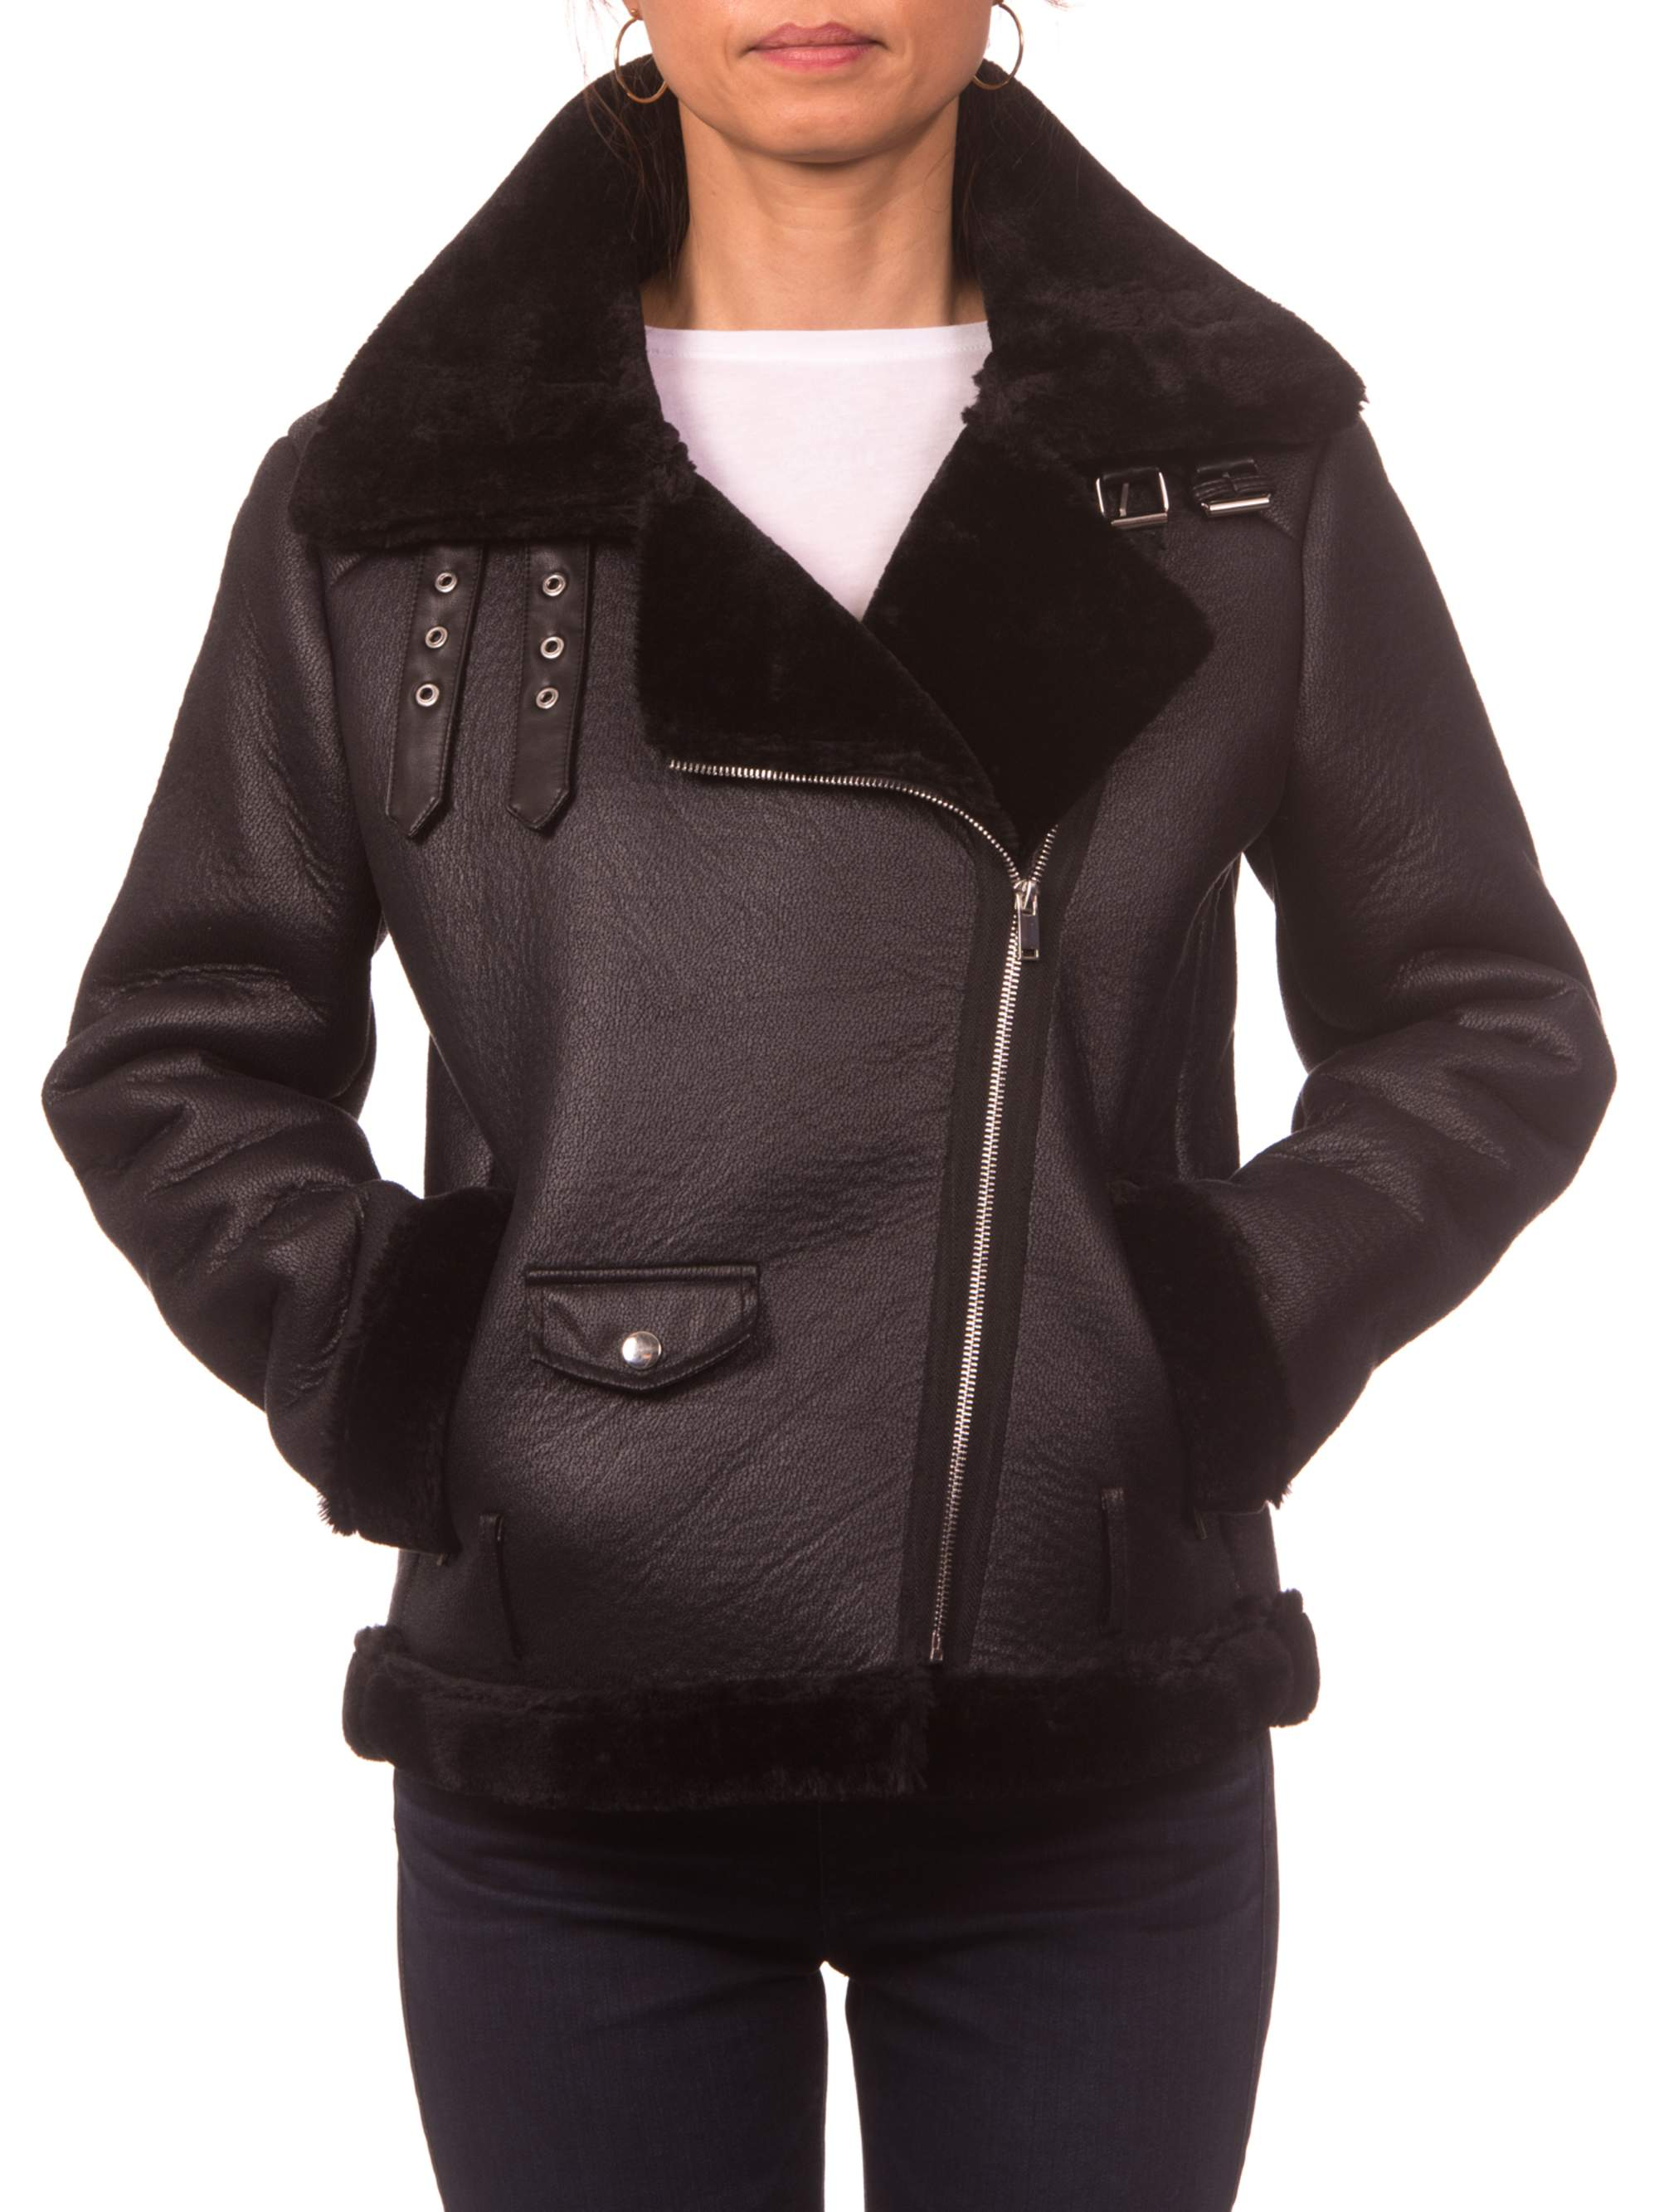 Nanette Lepore Faux Shearling Moto Jacket with Buckle Collar